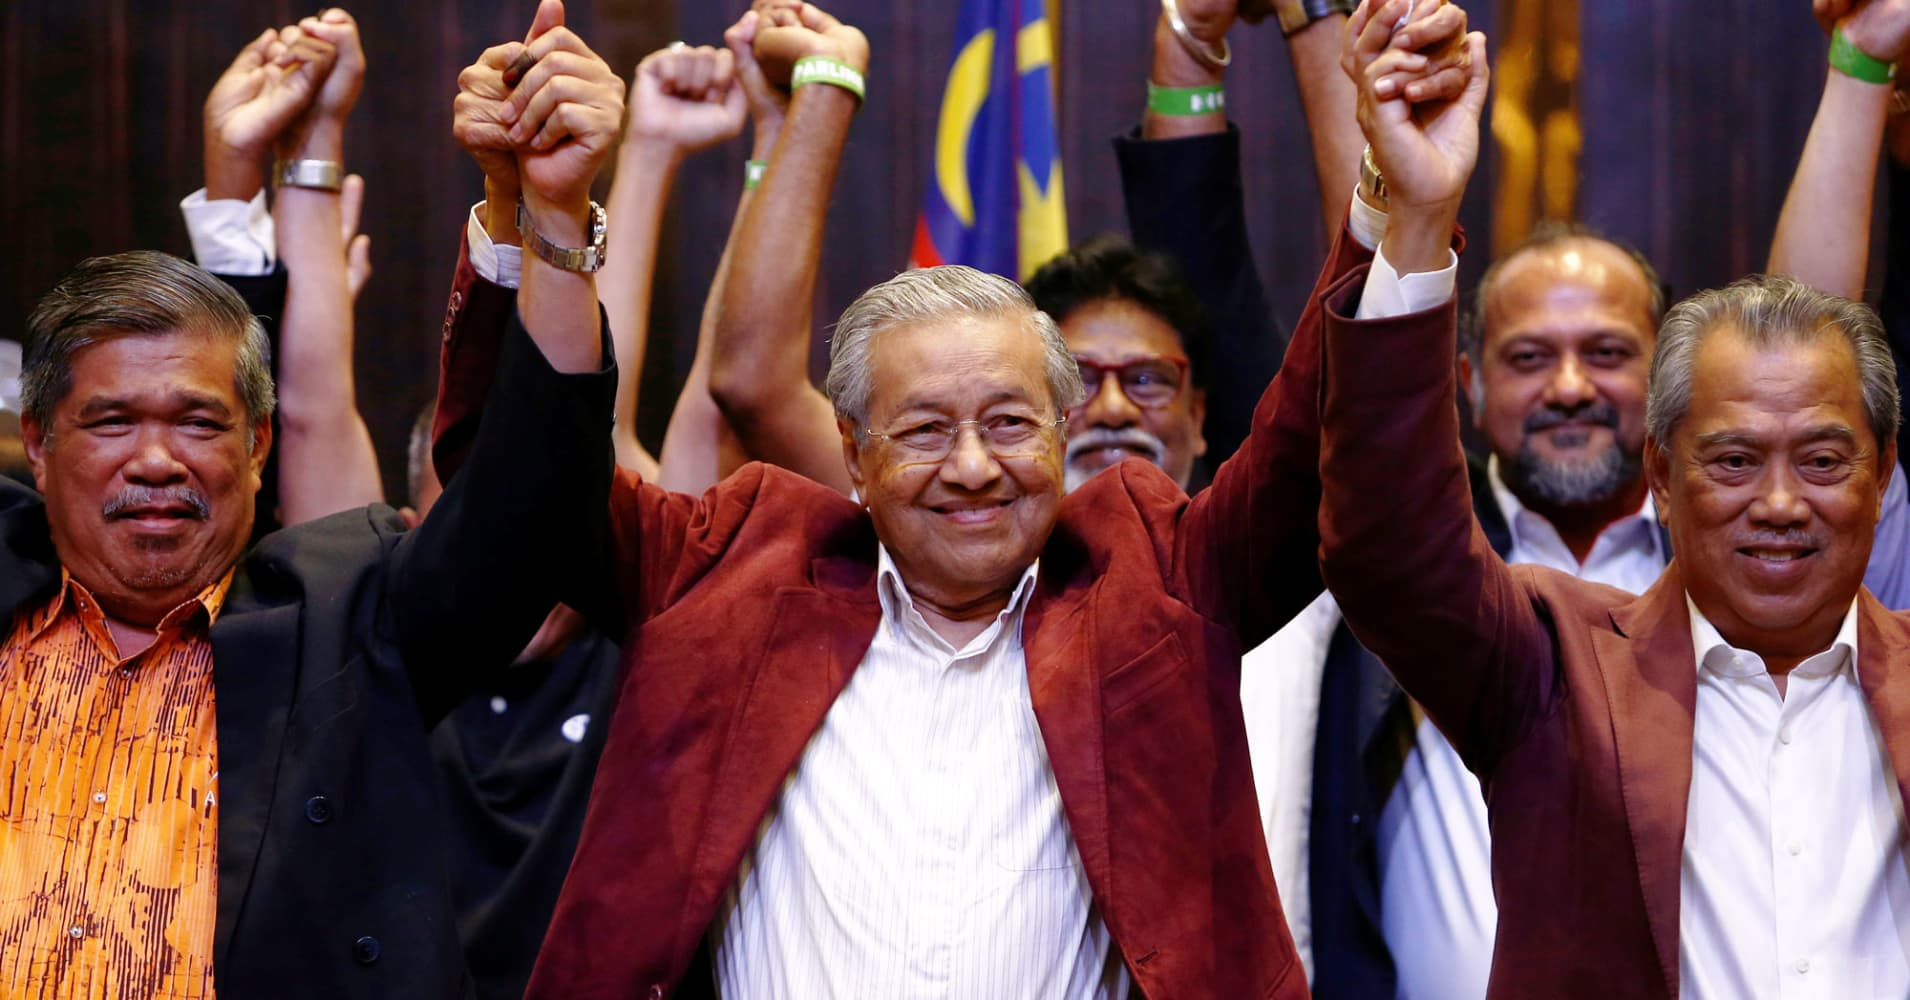 Mahathir Mohamad, former Malaysian prime minister and opposition candidate for Pakatan Harapan (Alliance of Hope) reacts during a news conference after general election, in Petaling Jaya, Malaysia, May 9, 2018.